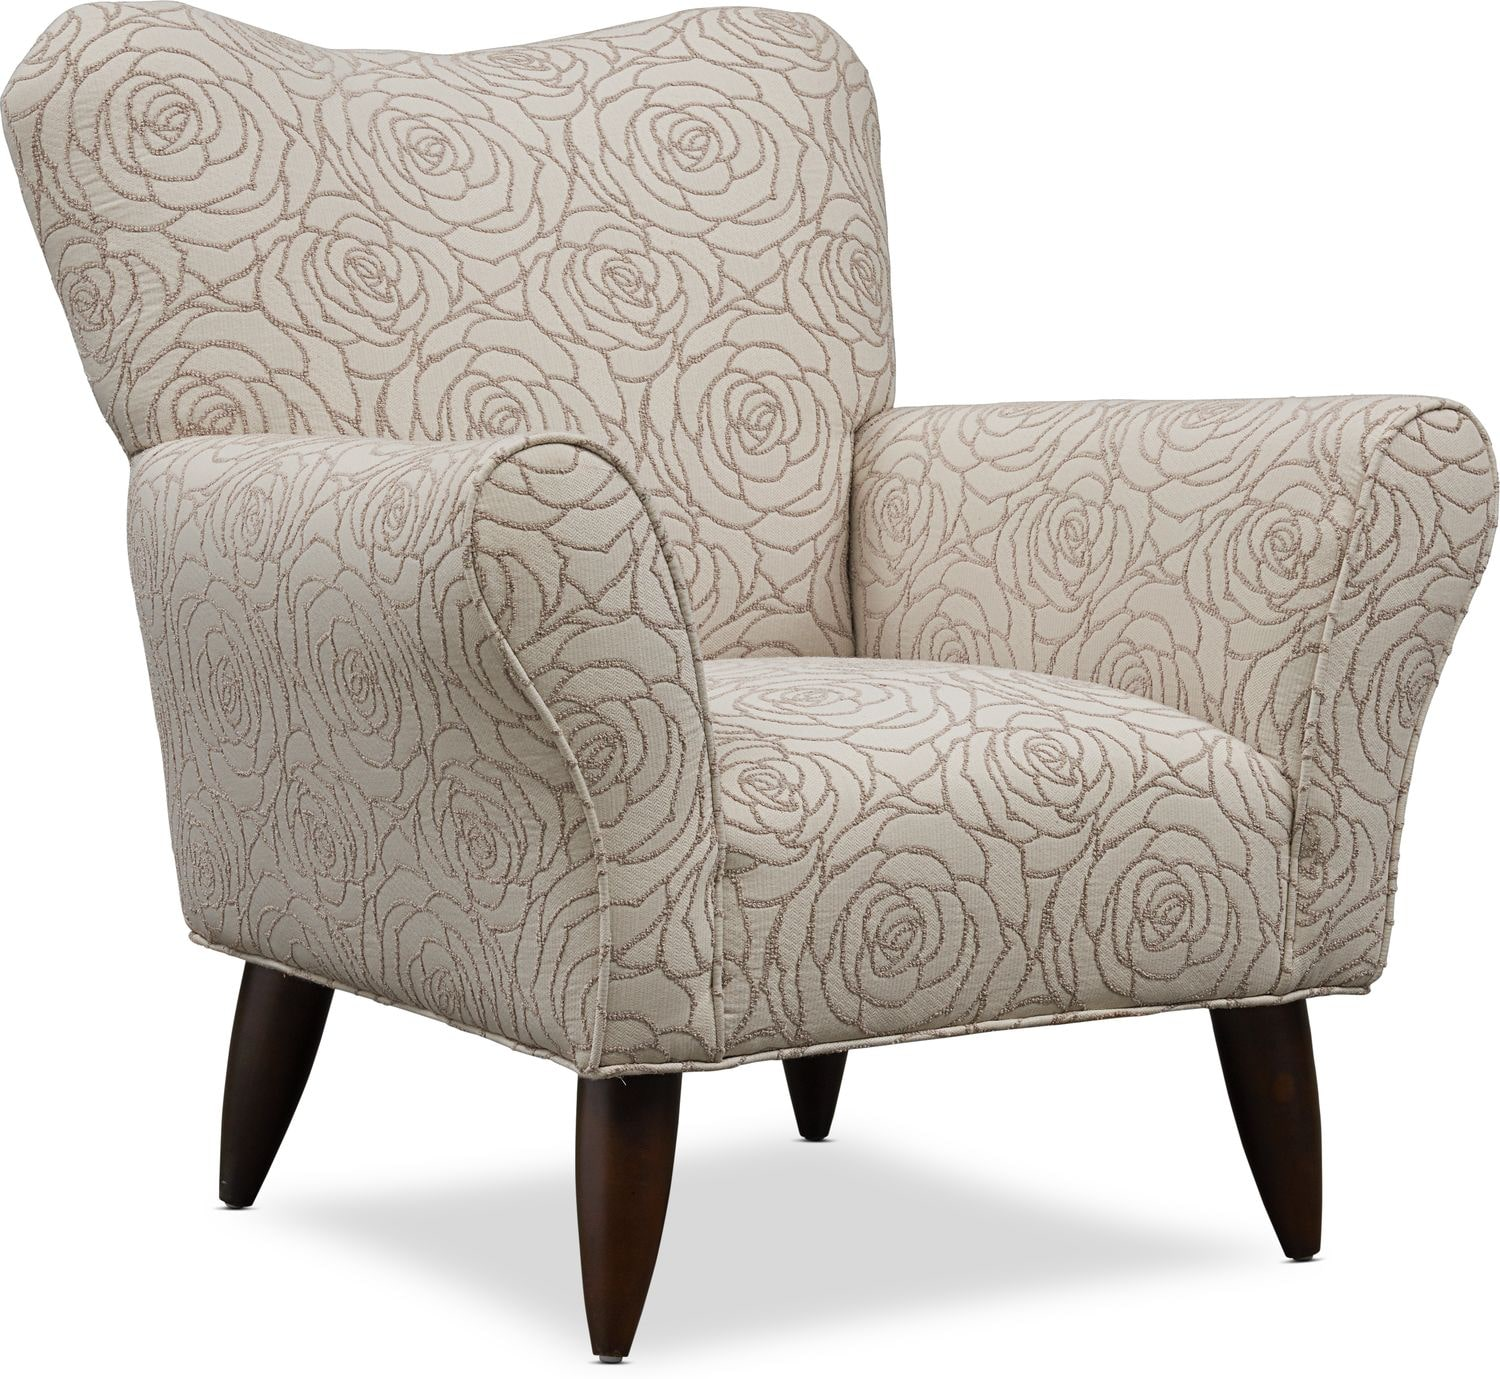 Living Room Furniture - Kady Patterned Accent Chair